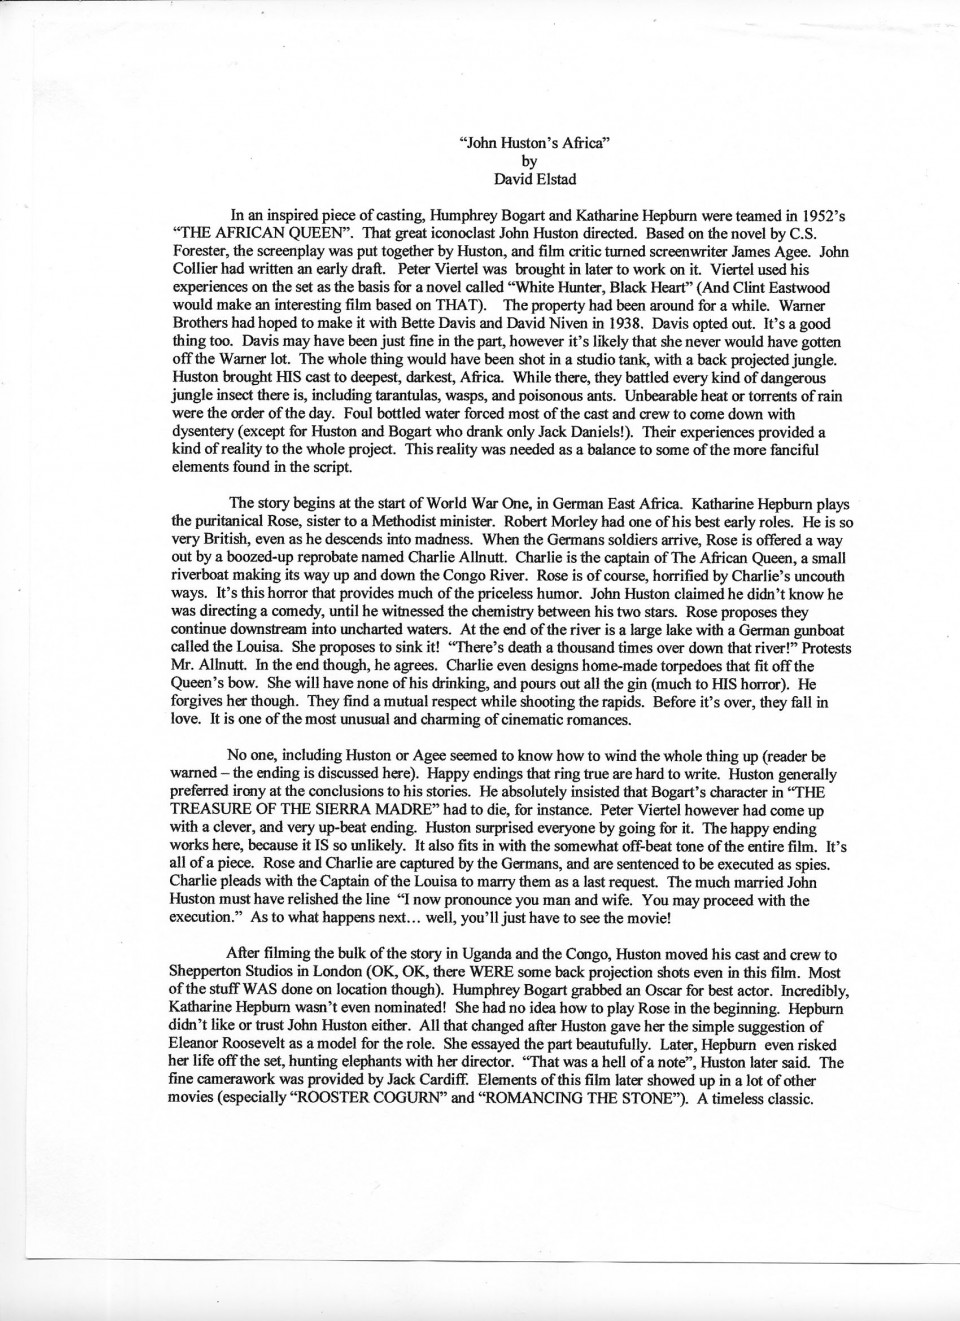 007 Character Essay Example Wondrous Prompts Rubric Writing 960